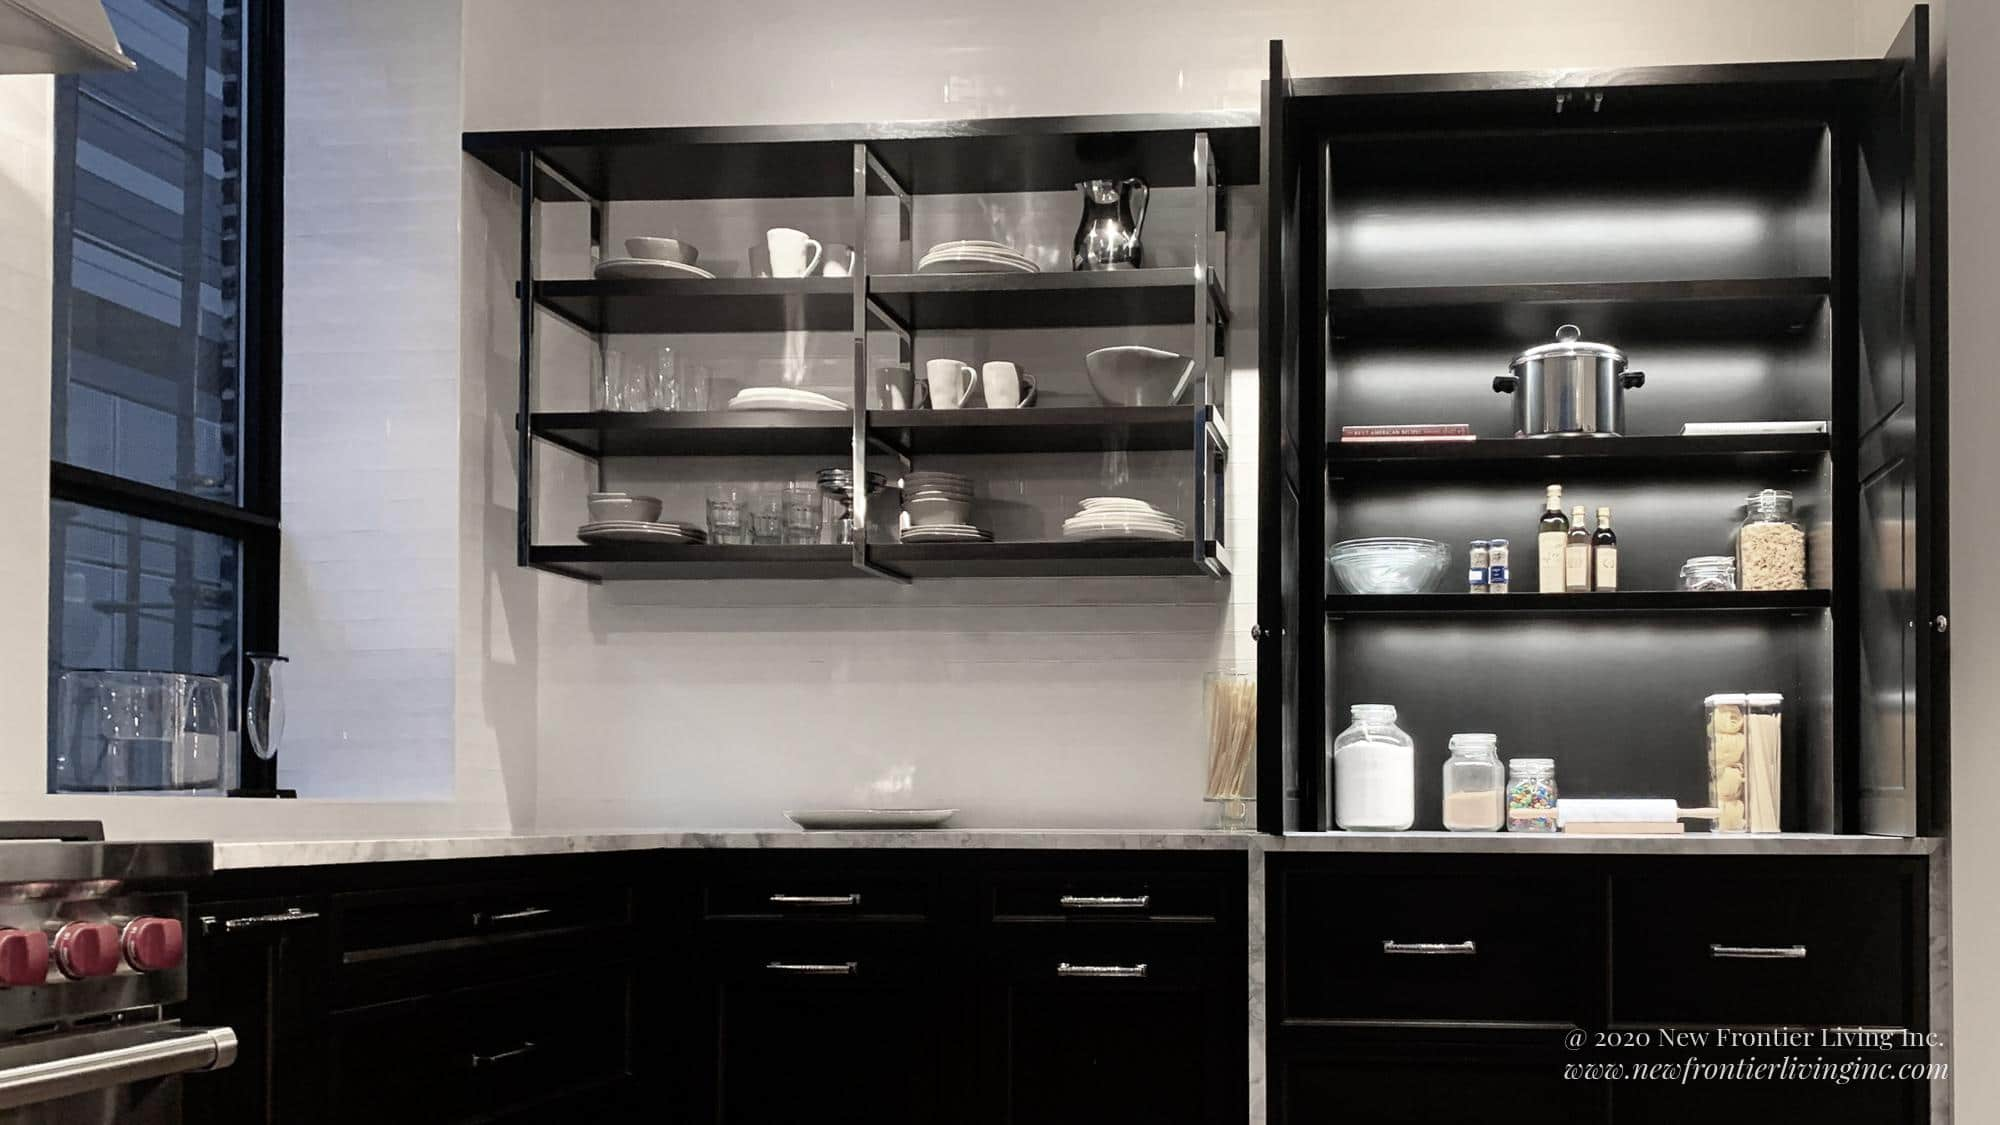 Traditional black kitchen with gray countertop, open shelves with dishes and food containers